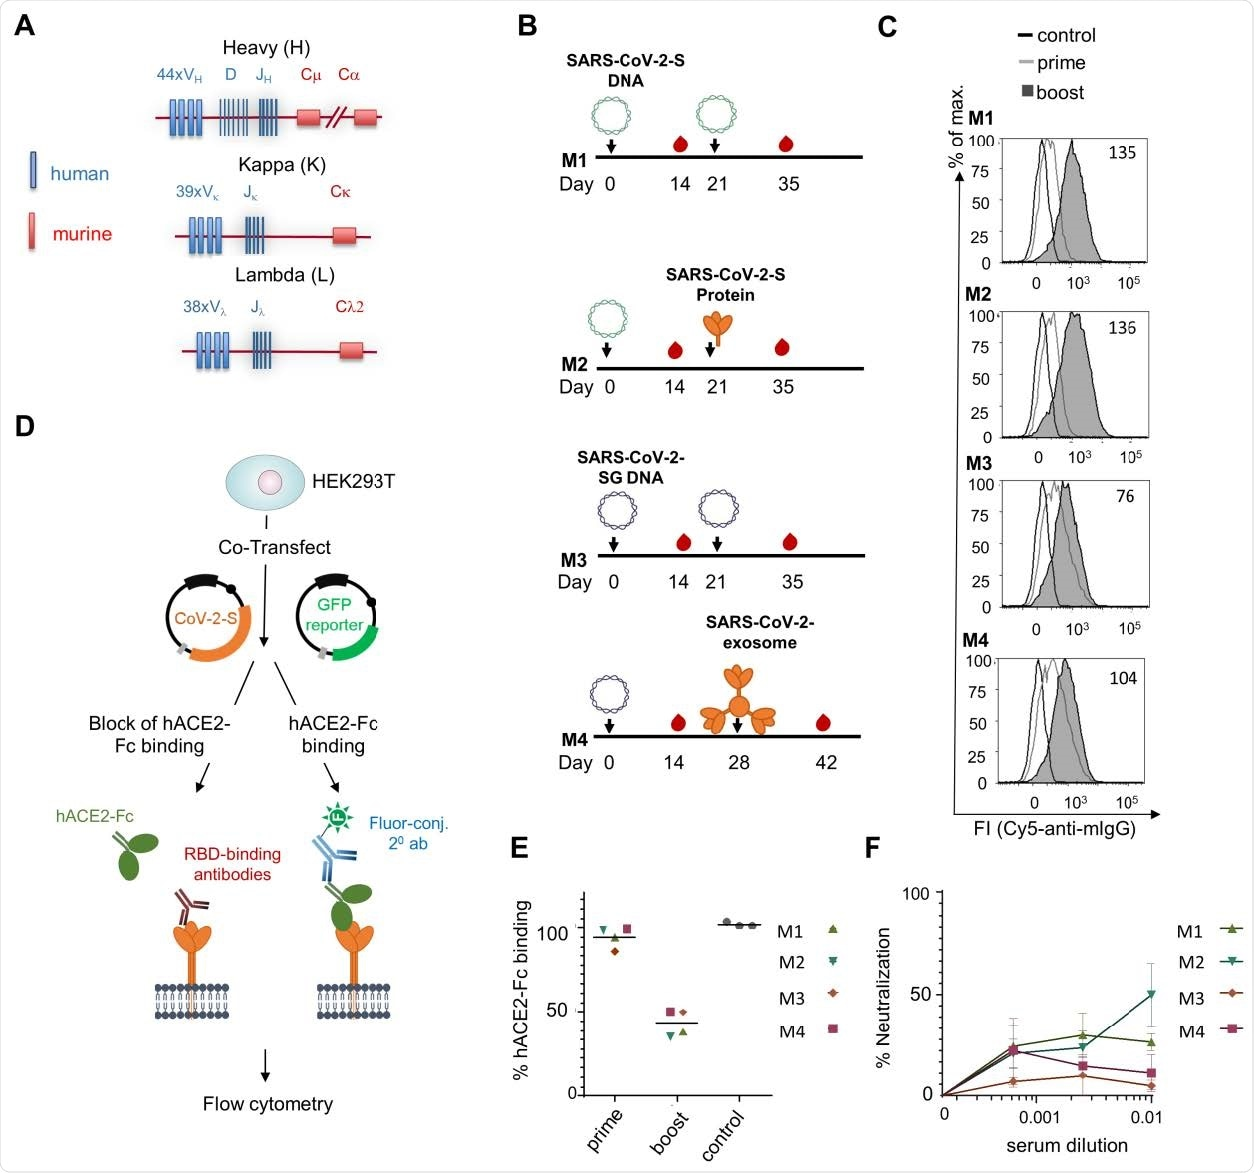 Immunization of TRIANNI mice for induction of SARS-CoV-2 neutralizing antibodies. TRIANNI mice harboring the entire human Ig variable region repertoire (A) were primed by intramuscular electroporation with expression plasmids for wild type SARS-CoV-2-S (M1, M2) or a hybrid SARS-CoV-2-S containing the intracytoplasmic domain of VSV-G (M3, M4) (B) Mice were boosted with the expression plasmids used for priming (M1, M3), soluble trimeric S protein (M2), or exosomes carrying the hybrid SARS-CoV-2-S protein (M4). (C) A flow cytometric assay assessed the binding of sera at a 1:200 dilution to the SARS-CoV-2-S protein with HEK-293T cells transiently expressing the S protein. Numbers indicate the relative mean fluorescence intensities of sera drawn two weeks after the booster immunizations. (D) Scheme of hACE2-Fc competition assay. HEK-293T cells expressing the SARS-CoV-2-S protein were incubated with hACE2-Fc fusion protein in the presence or absence of sera from immunized mice before staining with an AF647-labelled anti-human Fc antibody. (E) Competitive inhibition of hACE2-Fc binding to trimeric S protein by sera (1:200) from control mice and mice at the indicated time points after the first immunization. The mean percentage of binding as compared to control binding is shown (two experiments each performed in triplicates). (F) For the neutralization assay, Vero-E6 cells were infected with the SARS-CoV-2 isolate MUC-IMB-1 in the presence or absence of week 5 sera. SARS-CoV-2 infection was quantitated after 20 to 24 hours by staining with purified IgG from a convalescent COVID-19 patient and a fluorescence-labeled anti-human IgG using an ELISPOT reader. The mean and SEM of triplicates of one experiment are shown.